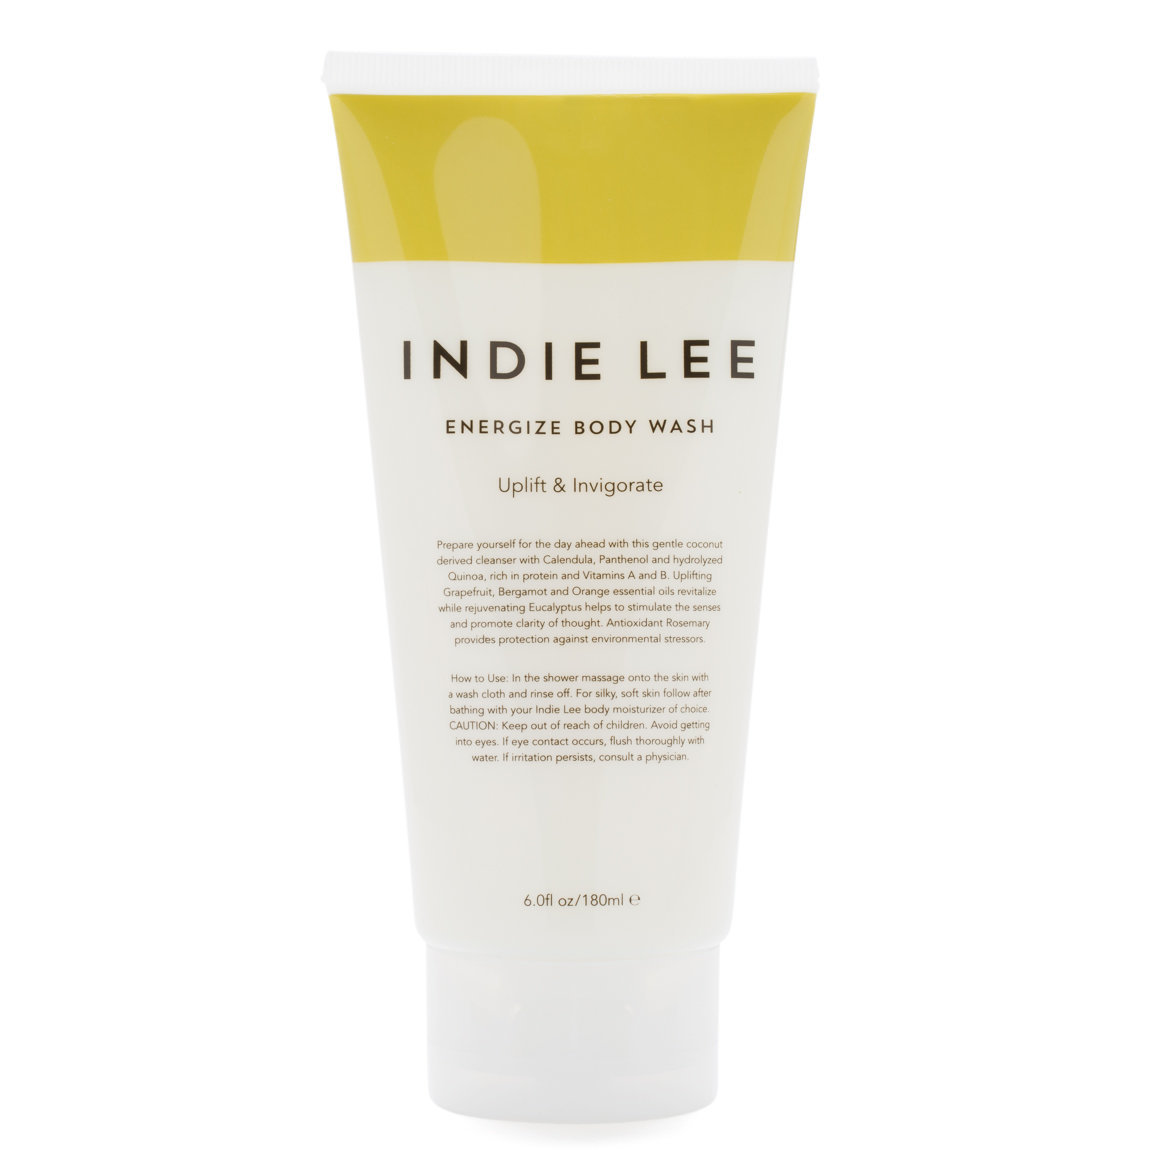 Indie Lee Energize Body Wash product swatch.